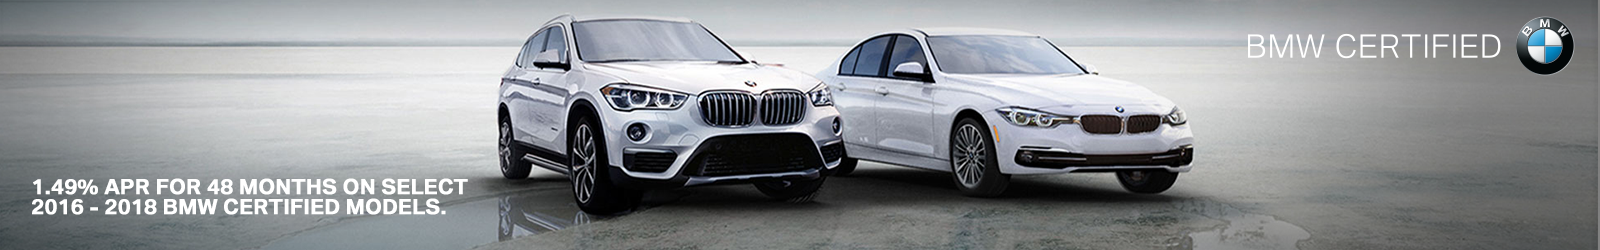 BMW Certified Pre Owned 1.49% APR for 48 Months on CPO Select Vehicles